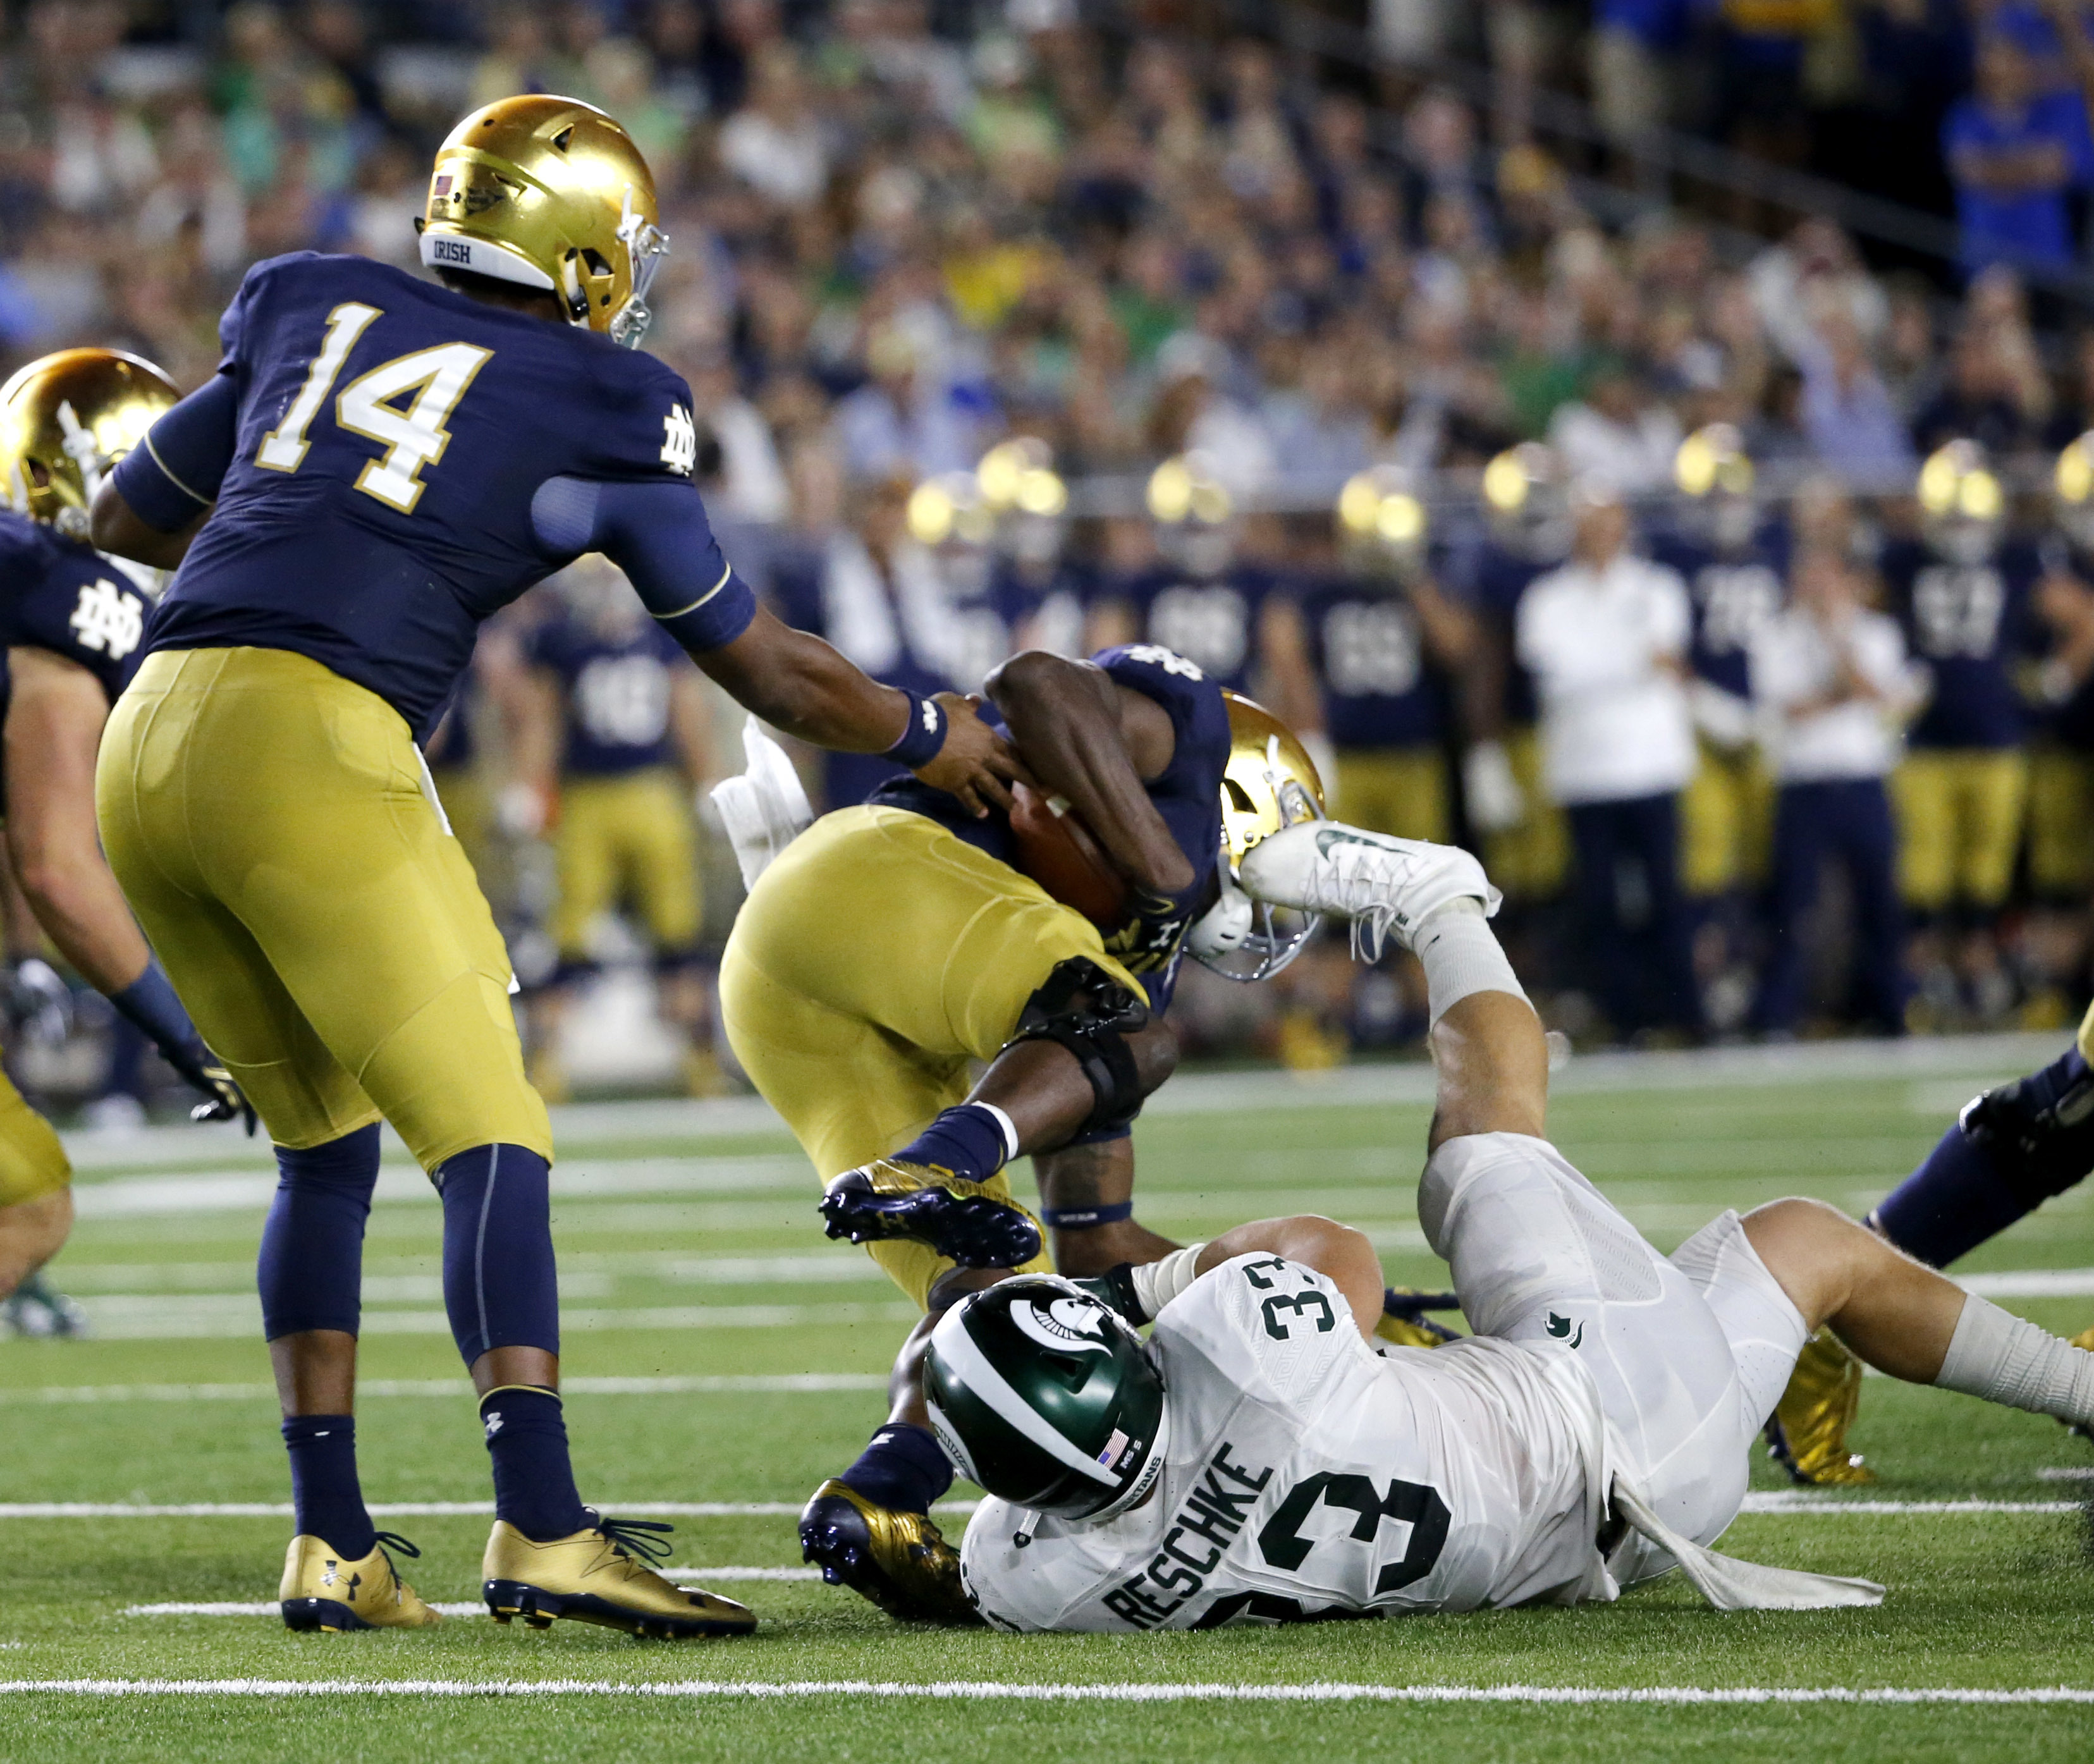 Michigan State linebacker Jon Reschke (33) trips Notre Dame running back Josh Adams after Adams got the handoff from quarterback DeShone Kizer during the second half of an NCAA college football game Saturday, Sept. 17, 2016, in South Bend, Ind. (AP Photo/